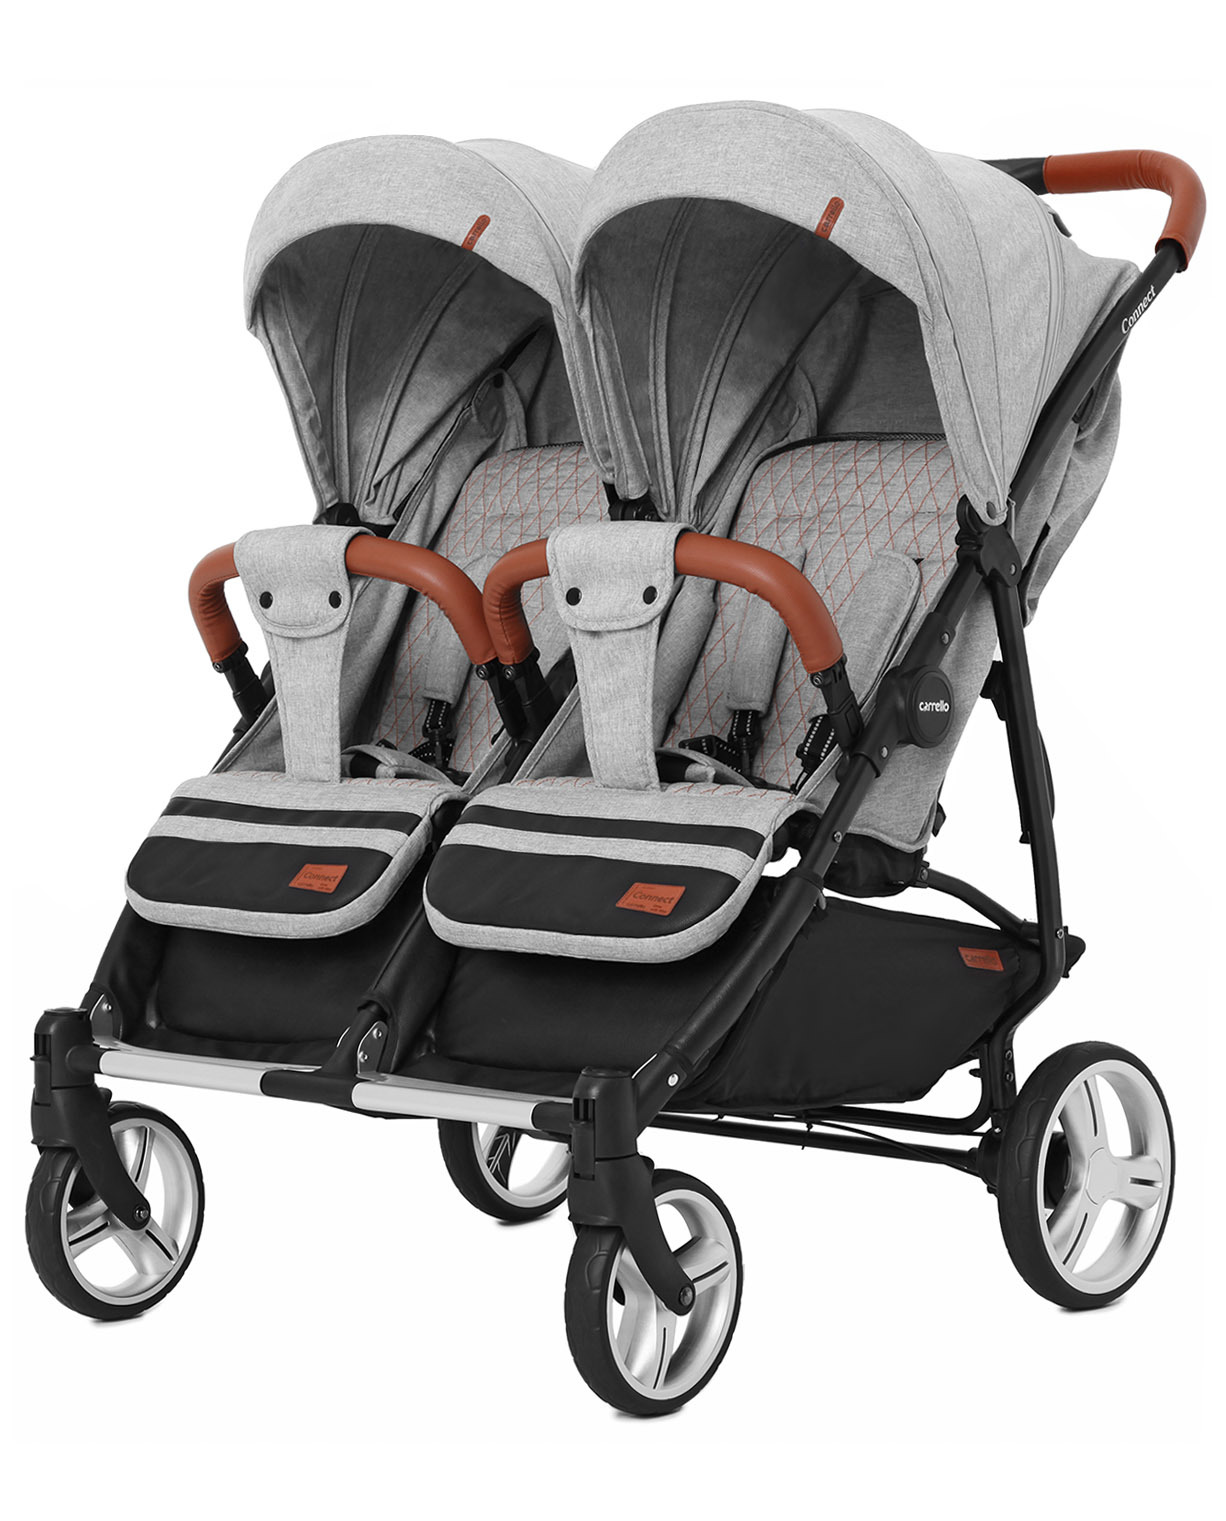 CARRELLO CONNECT прогулочная CARRELLO CONNECT прогулочная / 03 8bffa7421b507f4231ba67ecee37bf55.jpg